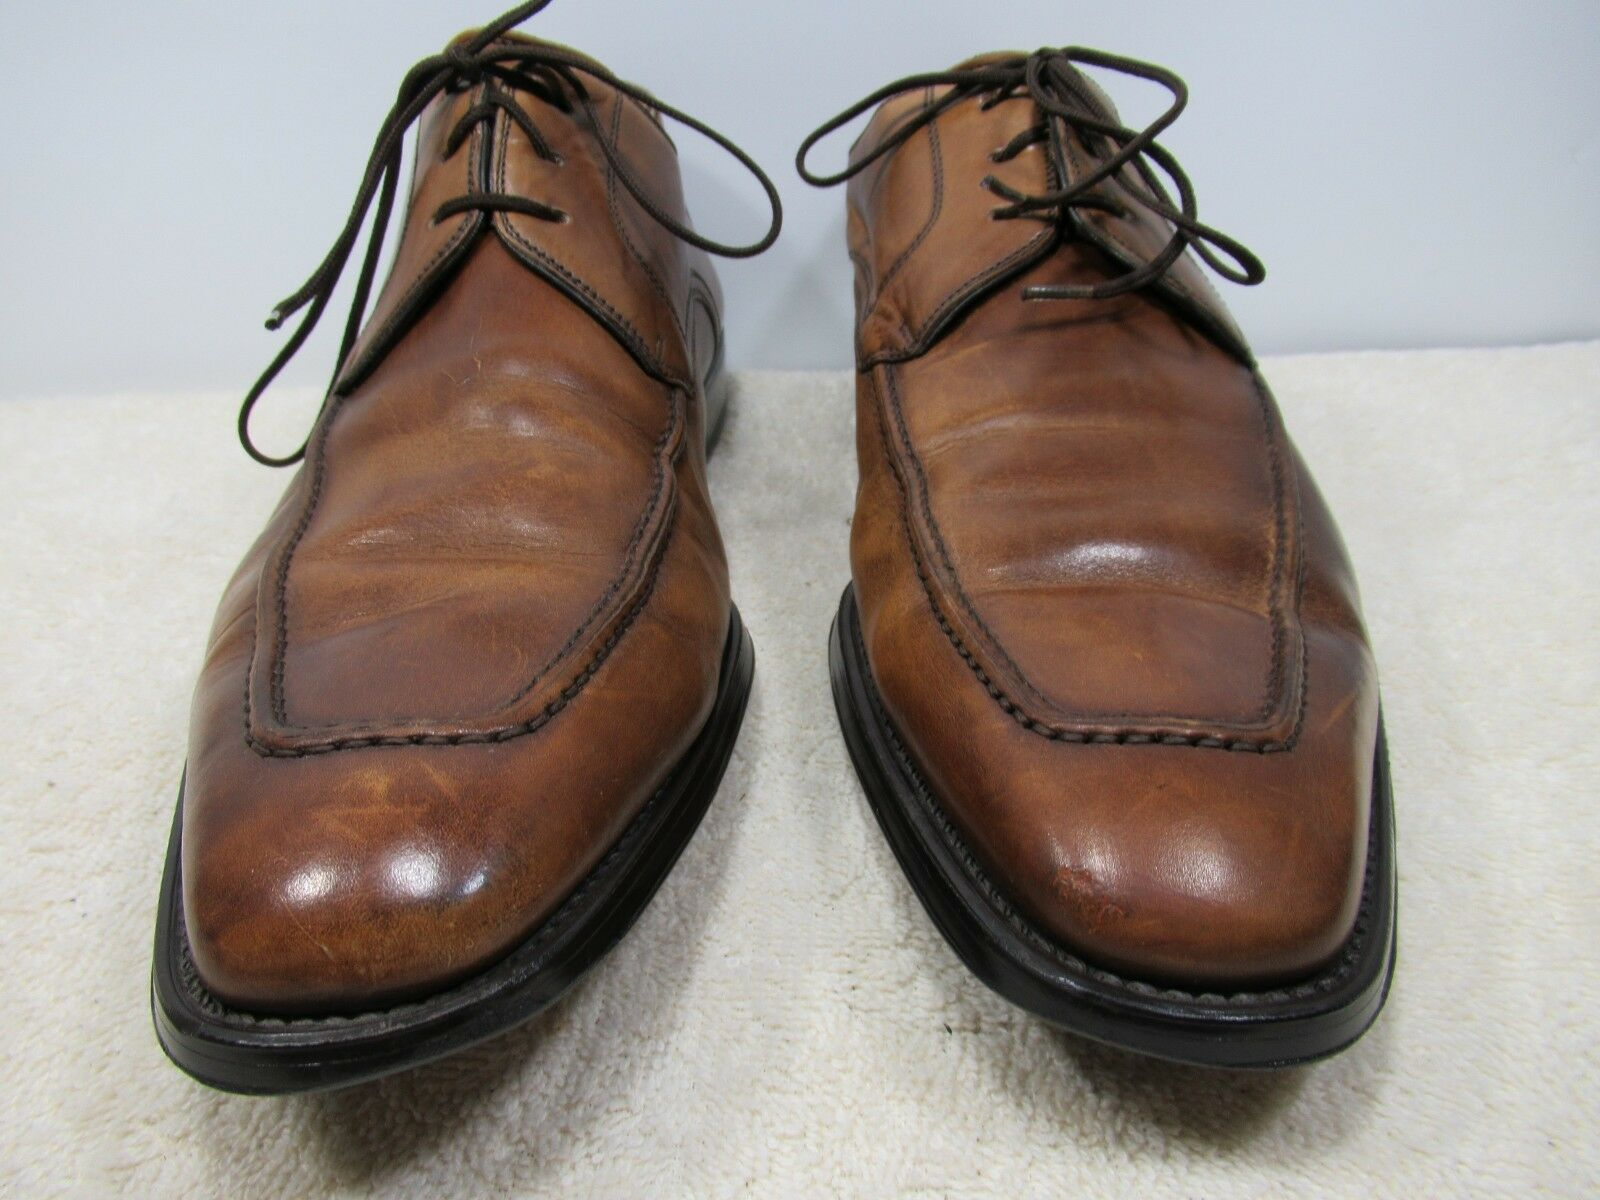 MAGNANNI braun LEATHER UPPER UPPER LEATHER Größe 8.5 M MADE IN SPAIN 3deef9